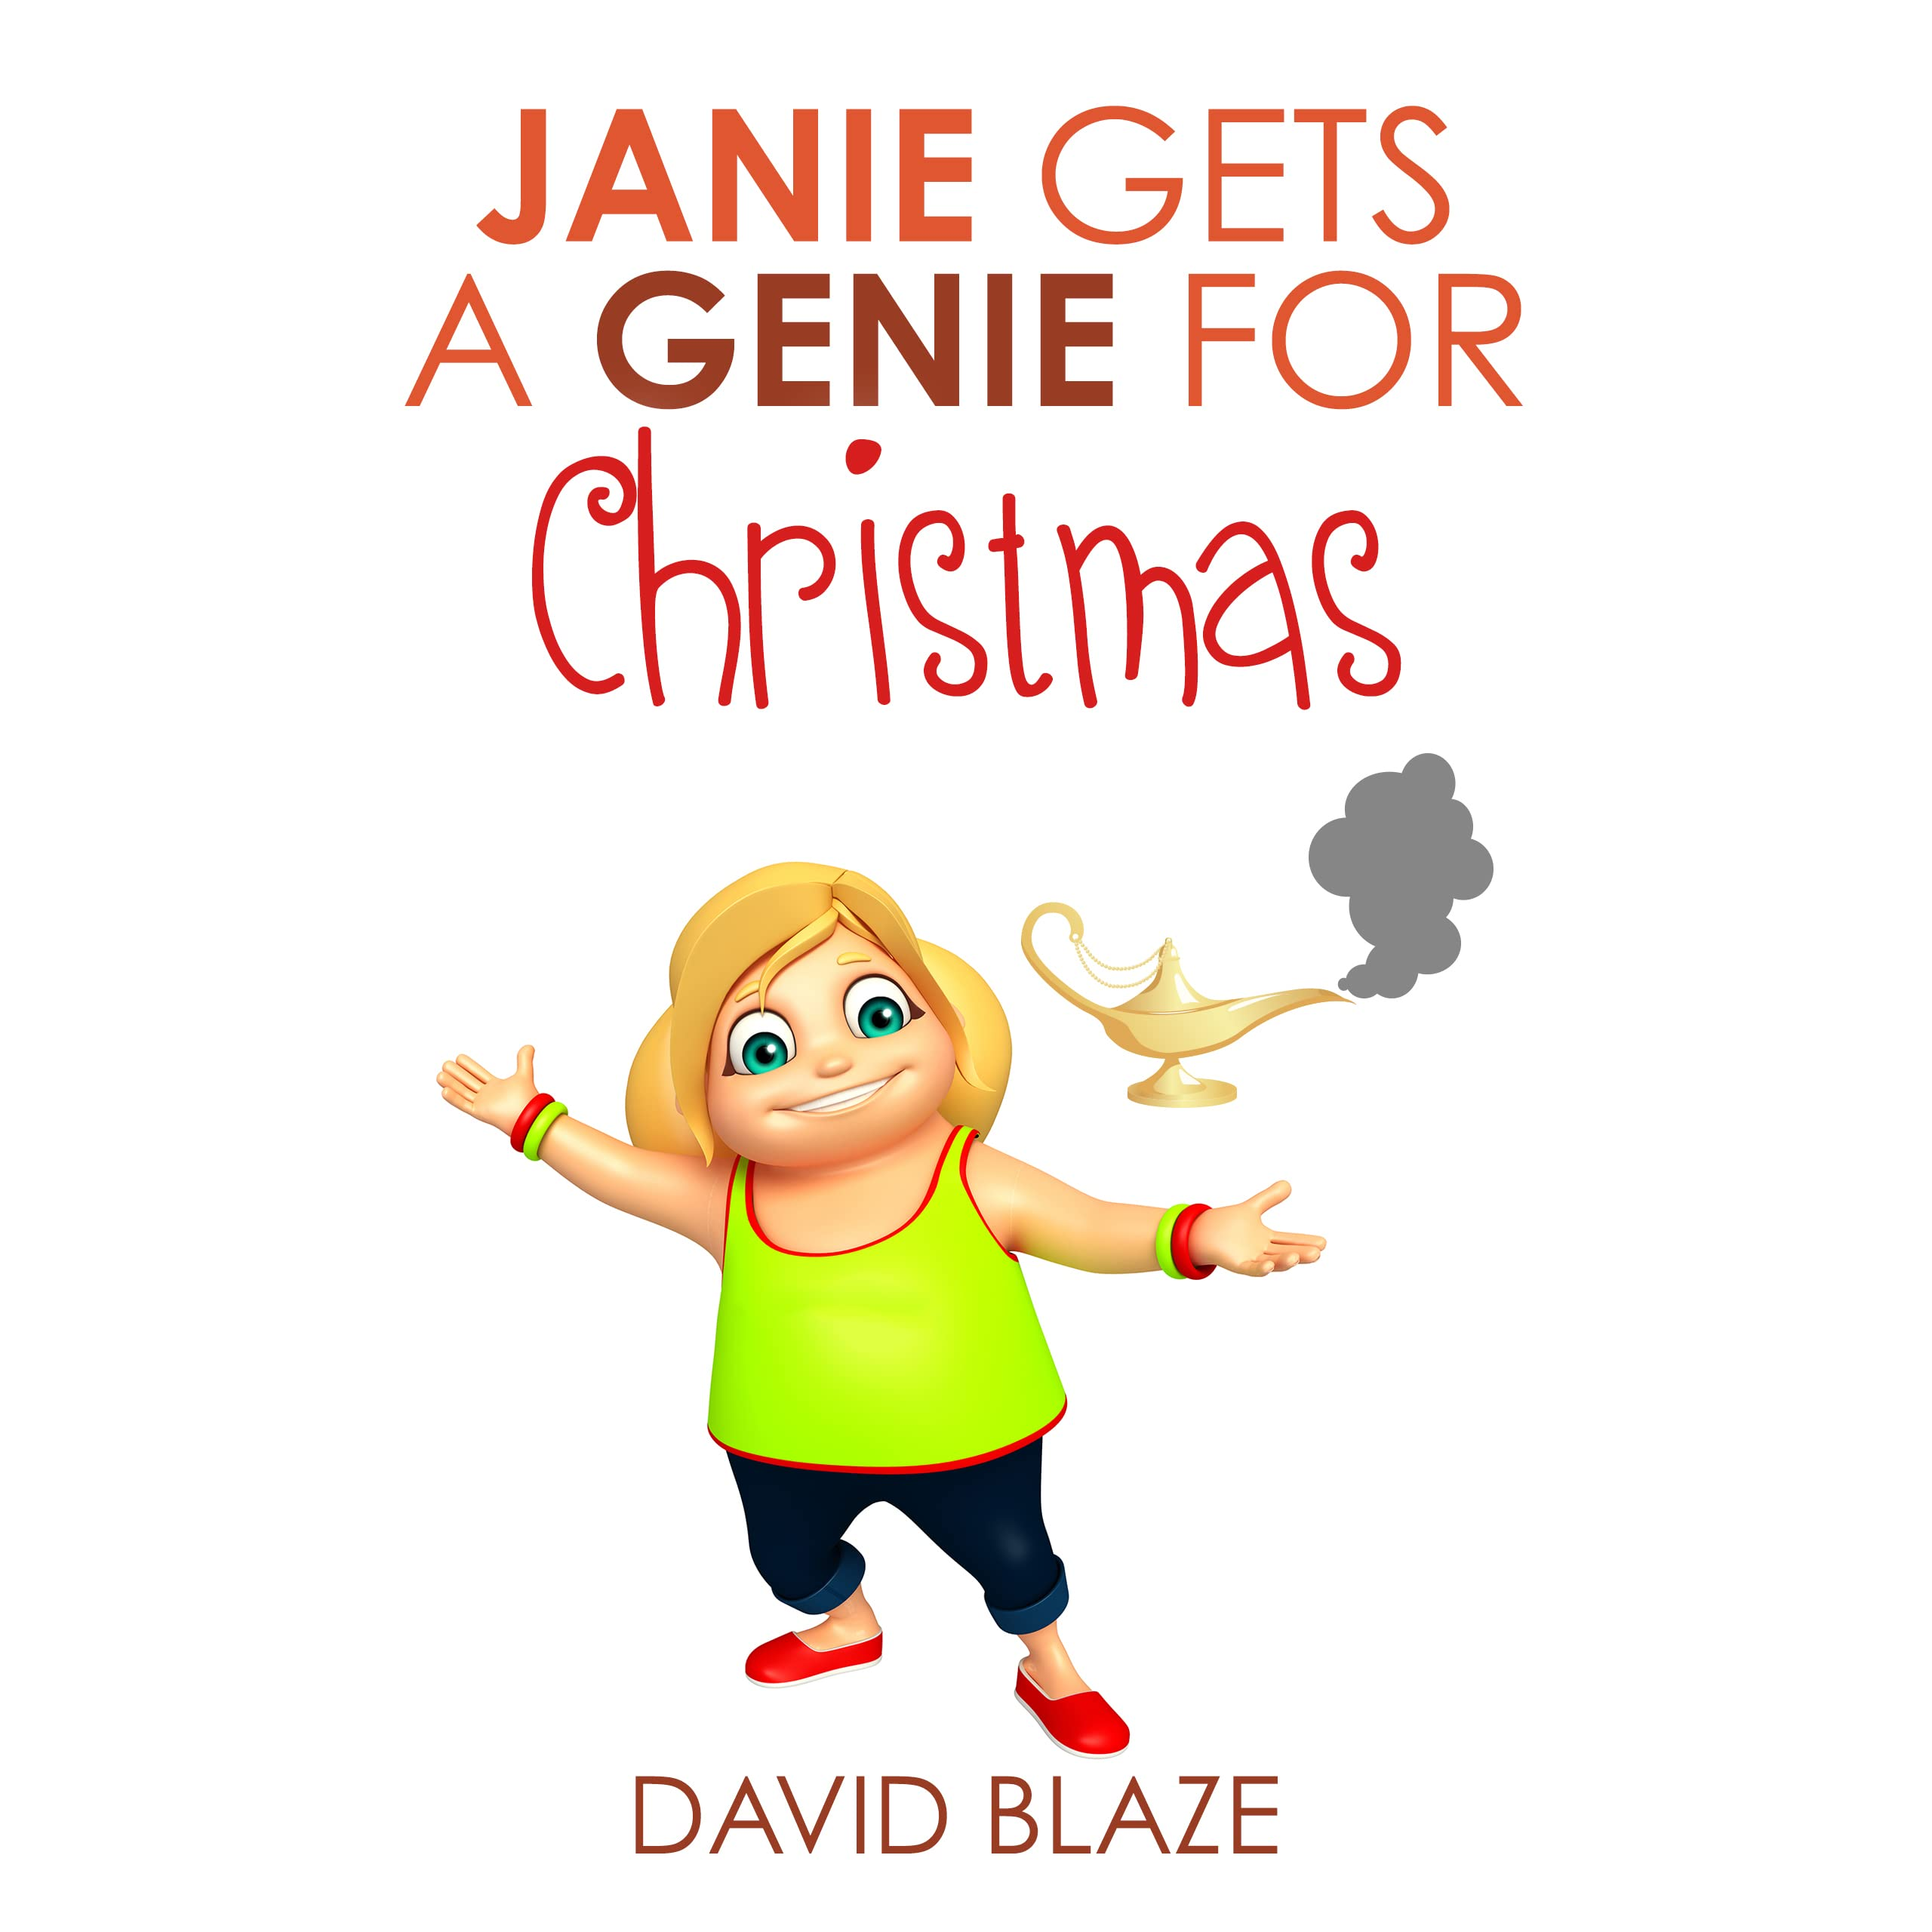 Janie Gets A Genie For Christmas by David Blaze